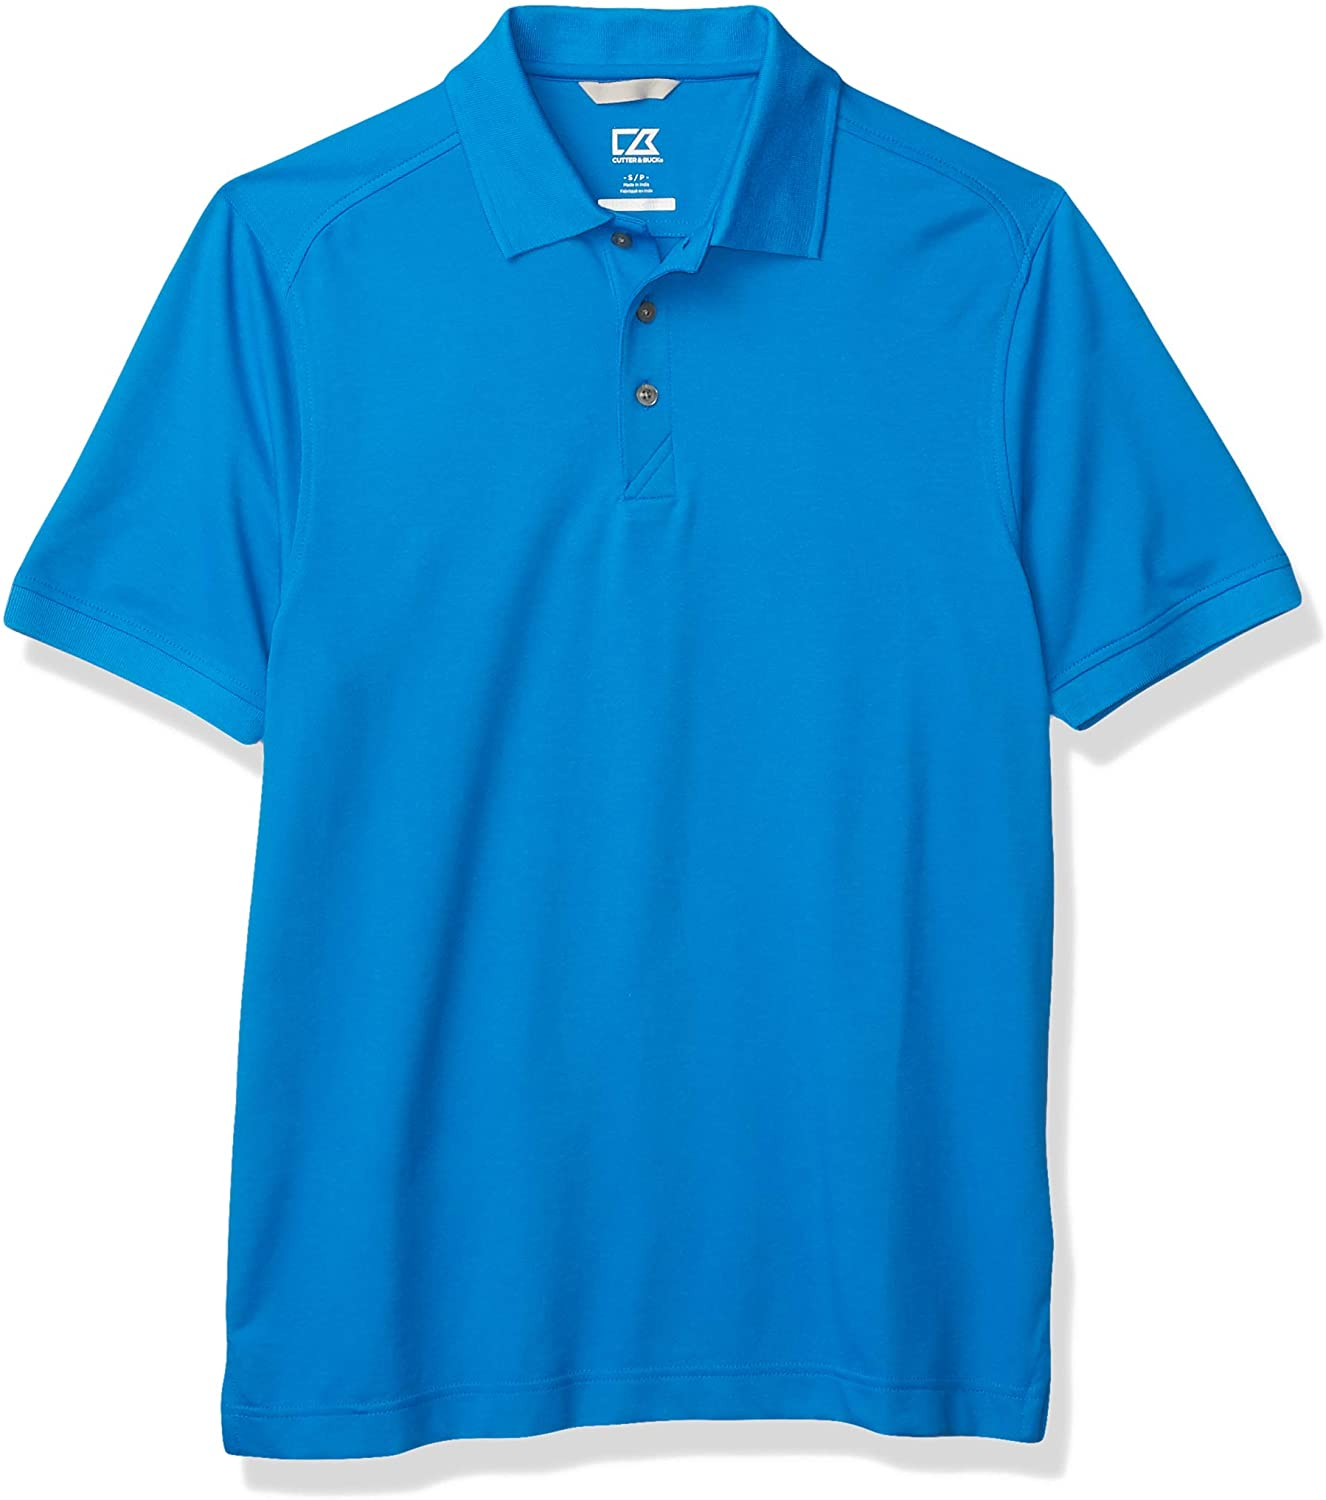 Cutter & Buck Men's Big and Tall Big & Tall 35+UPF, Short Sleeve Advantage Polo Shirt